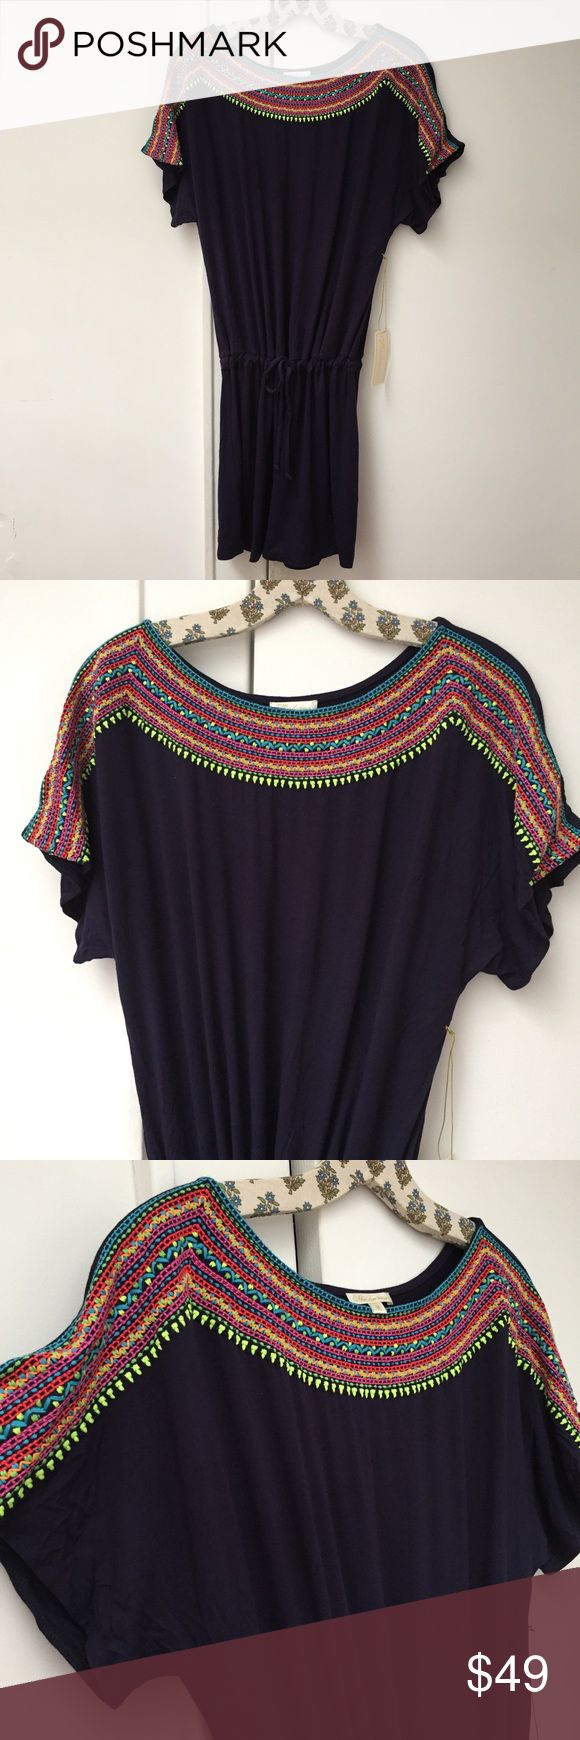 Free People Mara Hoffman Embroidered Jersey Tunic BRAND NEW WITH TAGS. Beautiful Embroidered deep navy jersey tunic. This style is a beach cover up, but the jersey is nice and thick and can be worn everyday as a tunic dress. Features a beautiful geometric embroidery at the neckline, short dolman sleeves, and drawstring waistband. Dress is unlined. Size M. Dress is by Shoshanna, but looks very much like a free People or Mara Hoffman dress. Free People Dresses Mini